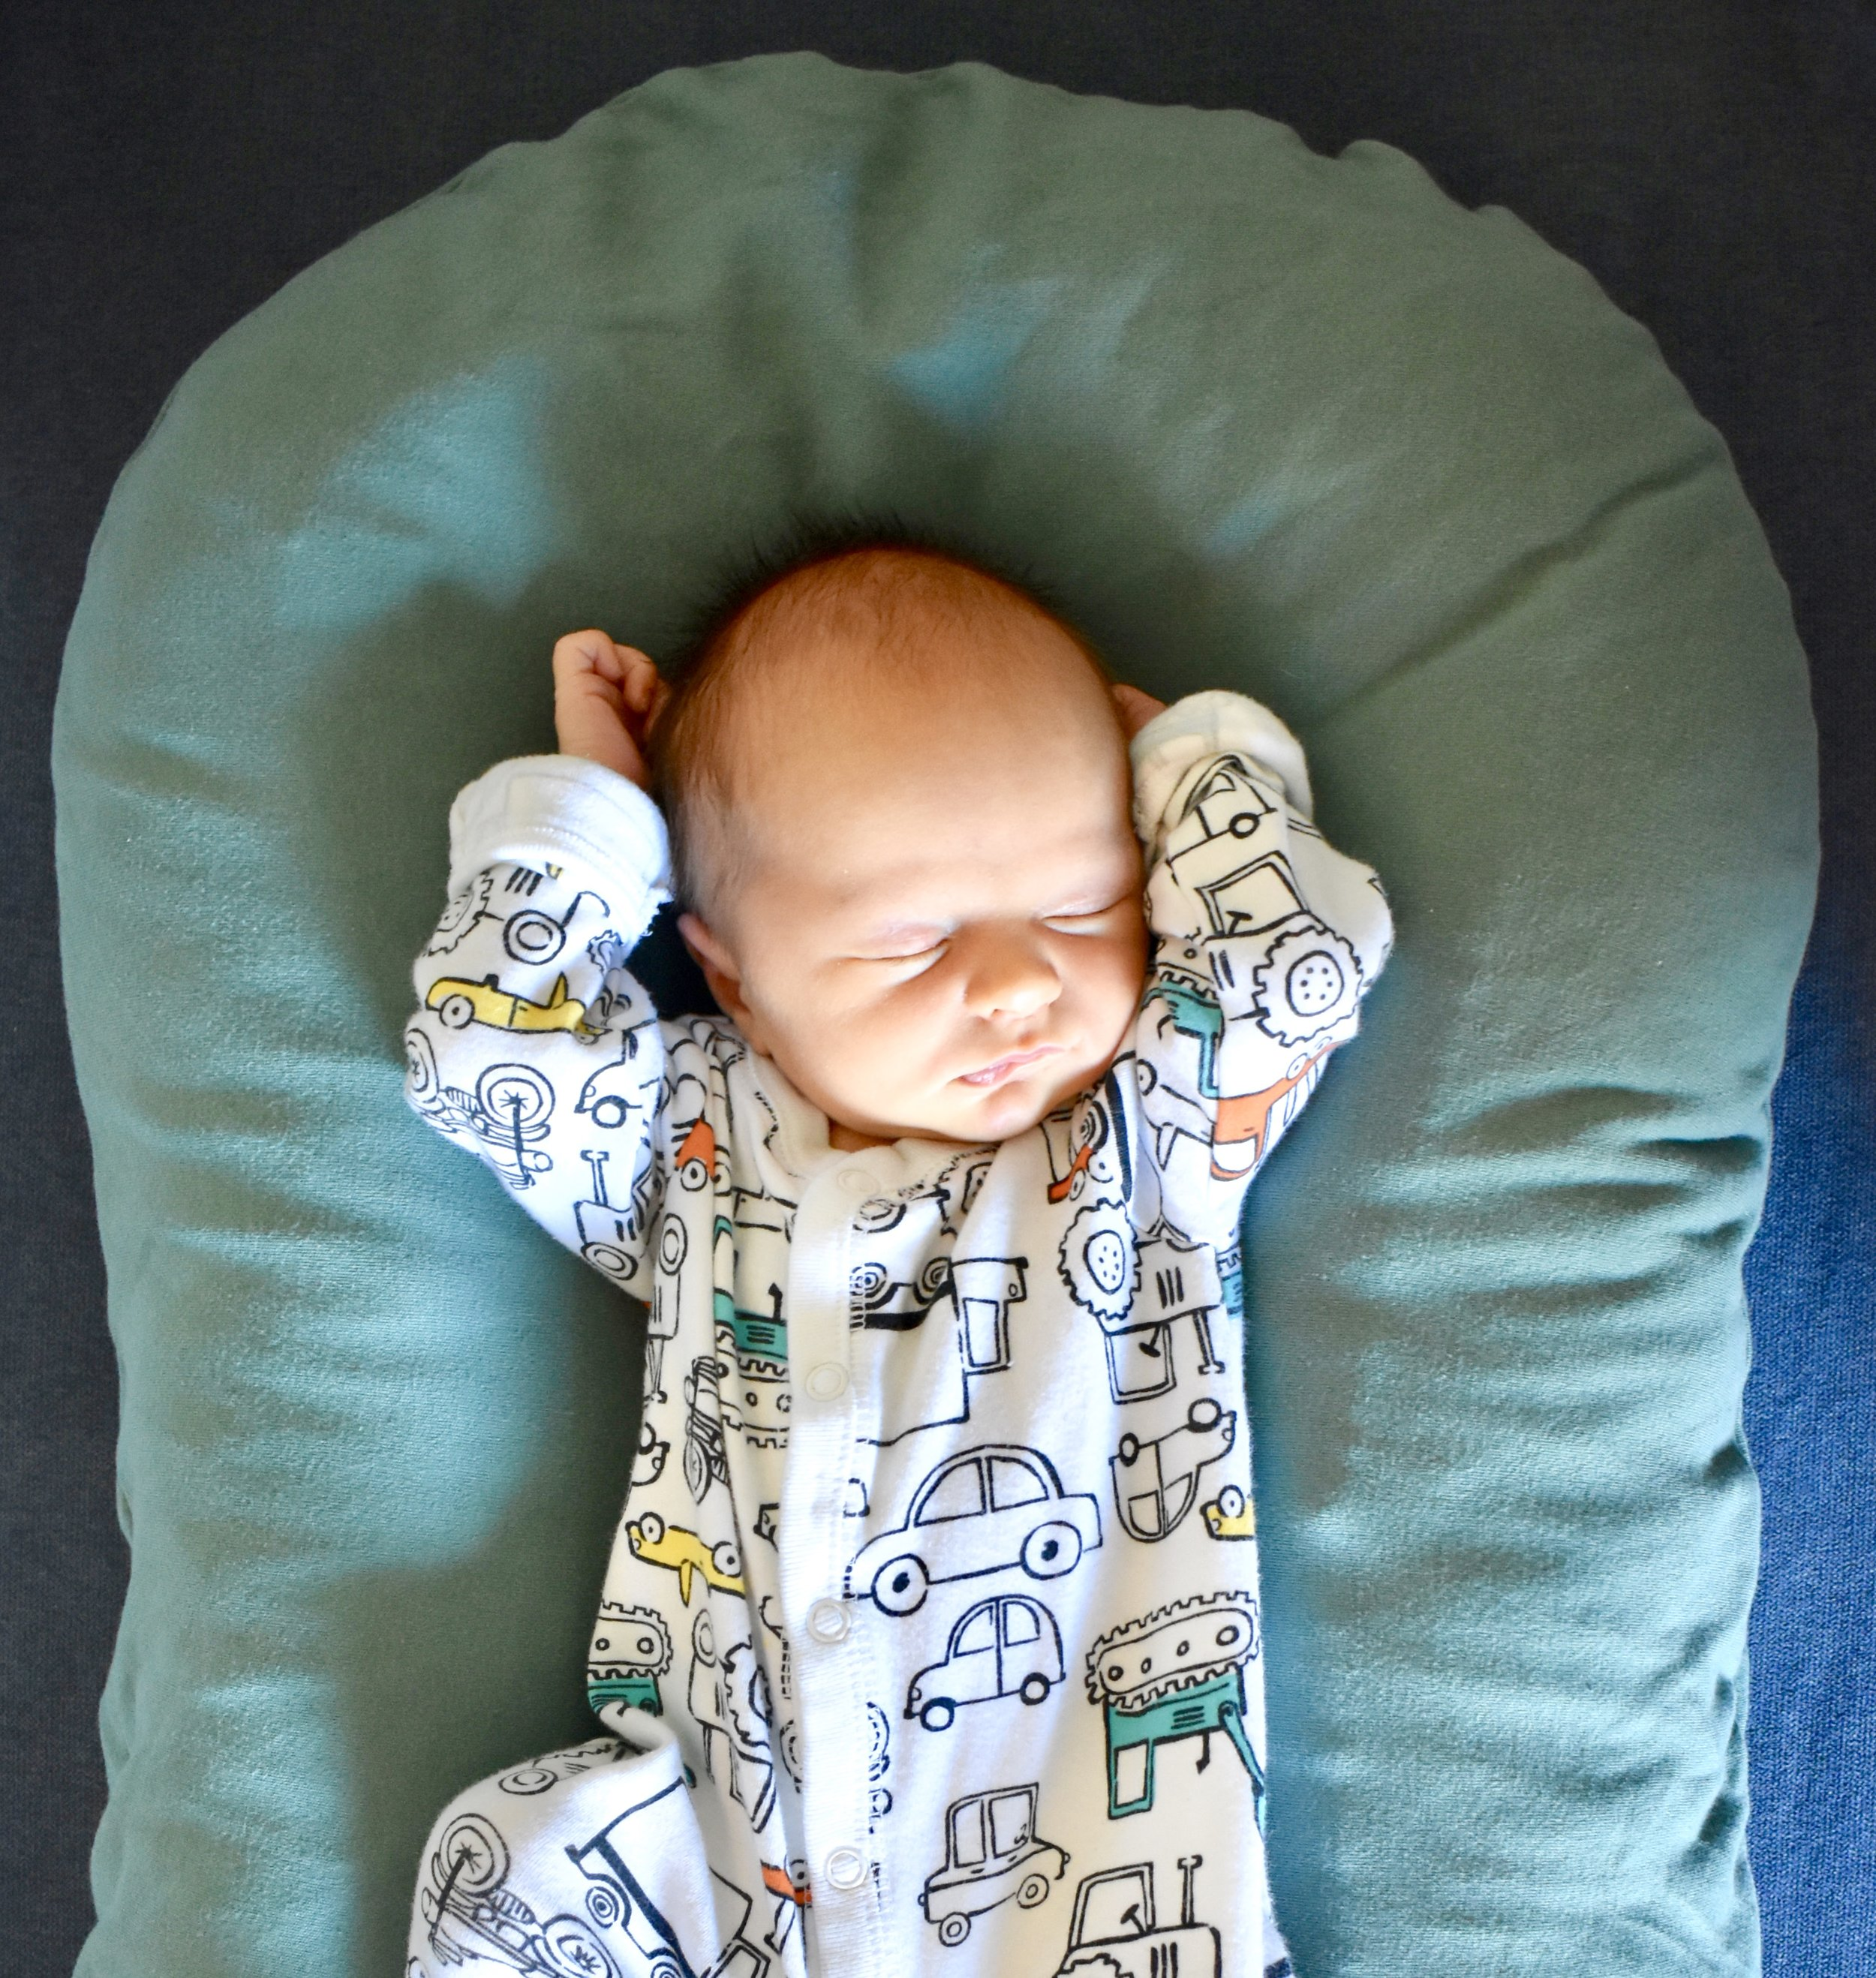 I forgot how lazy newborns are. Always just lounging around in jammies. They've got a good life. And I have a good life with them.